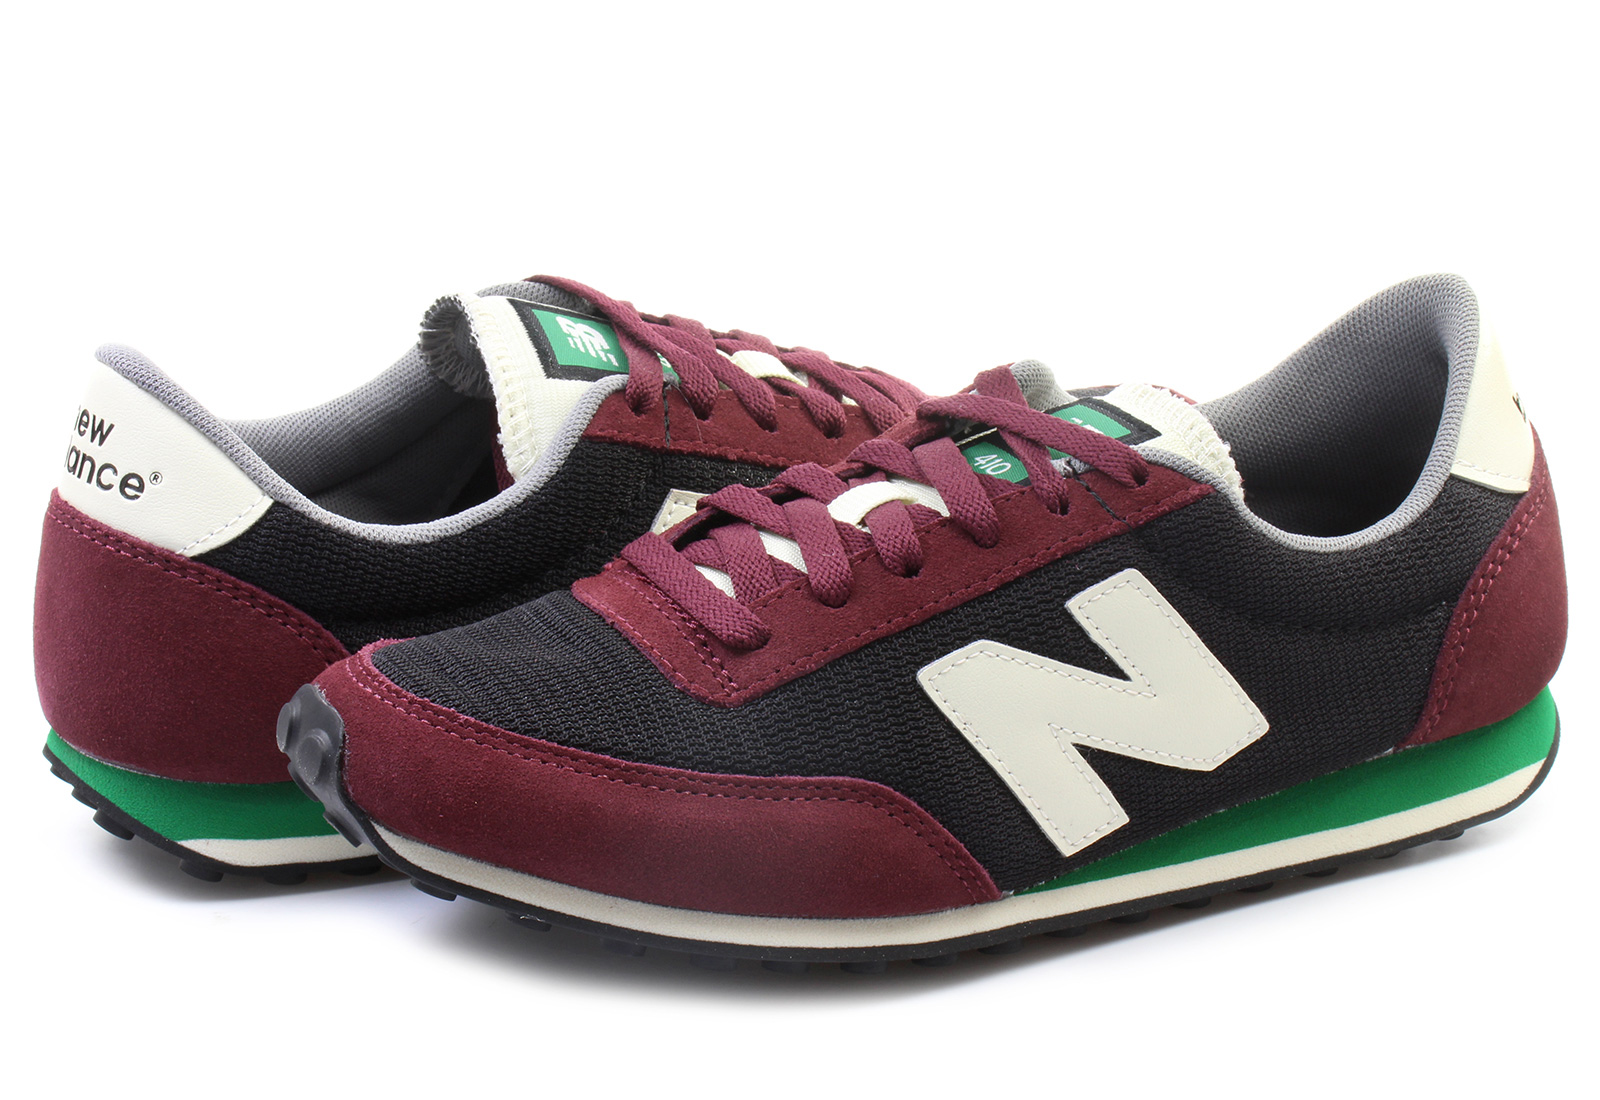 new balance shoes u410 u410hbk online shop for sneakers shoes and boots. Black Bedroom Furniture Sets. Home Design Ideas